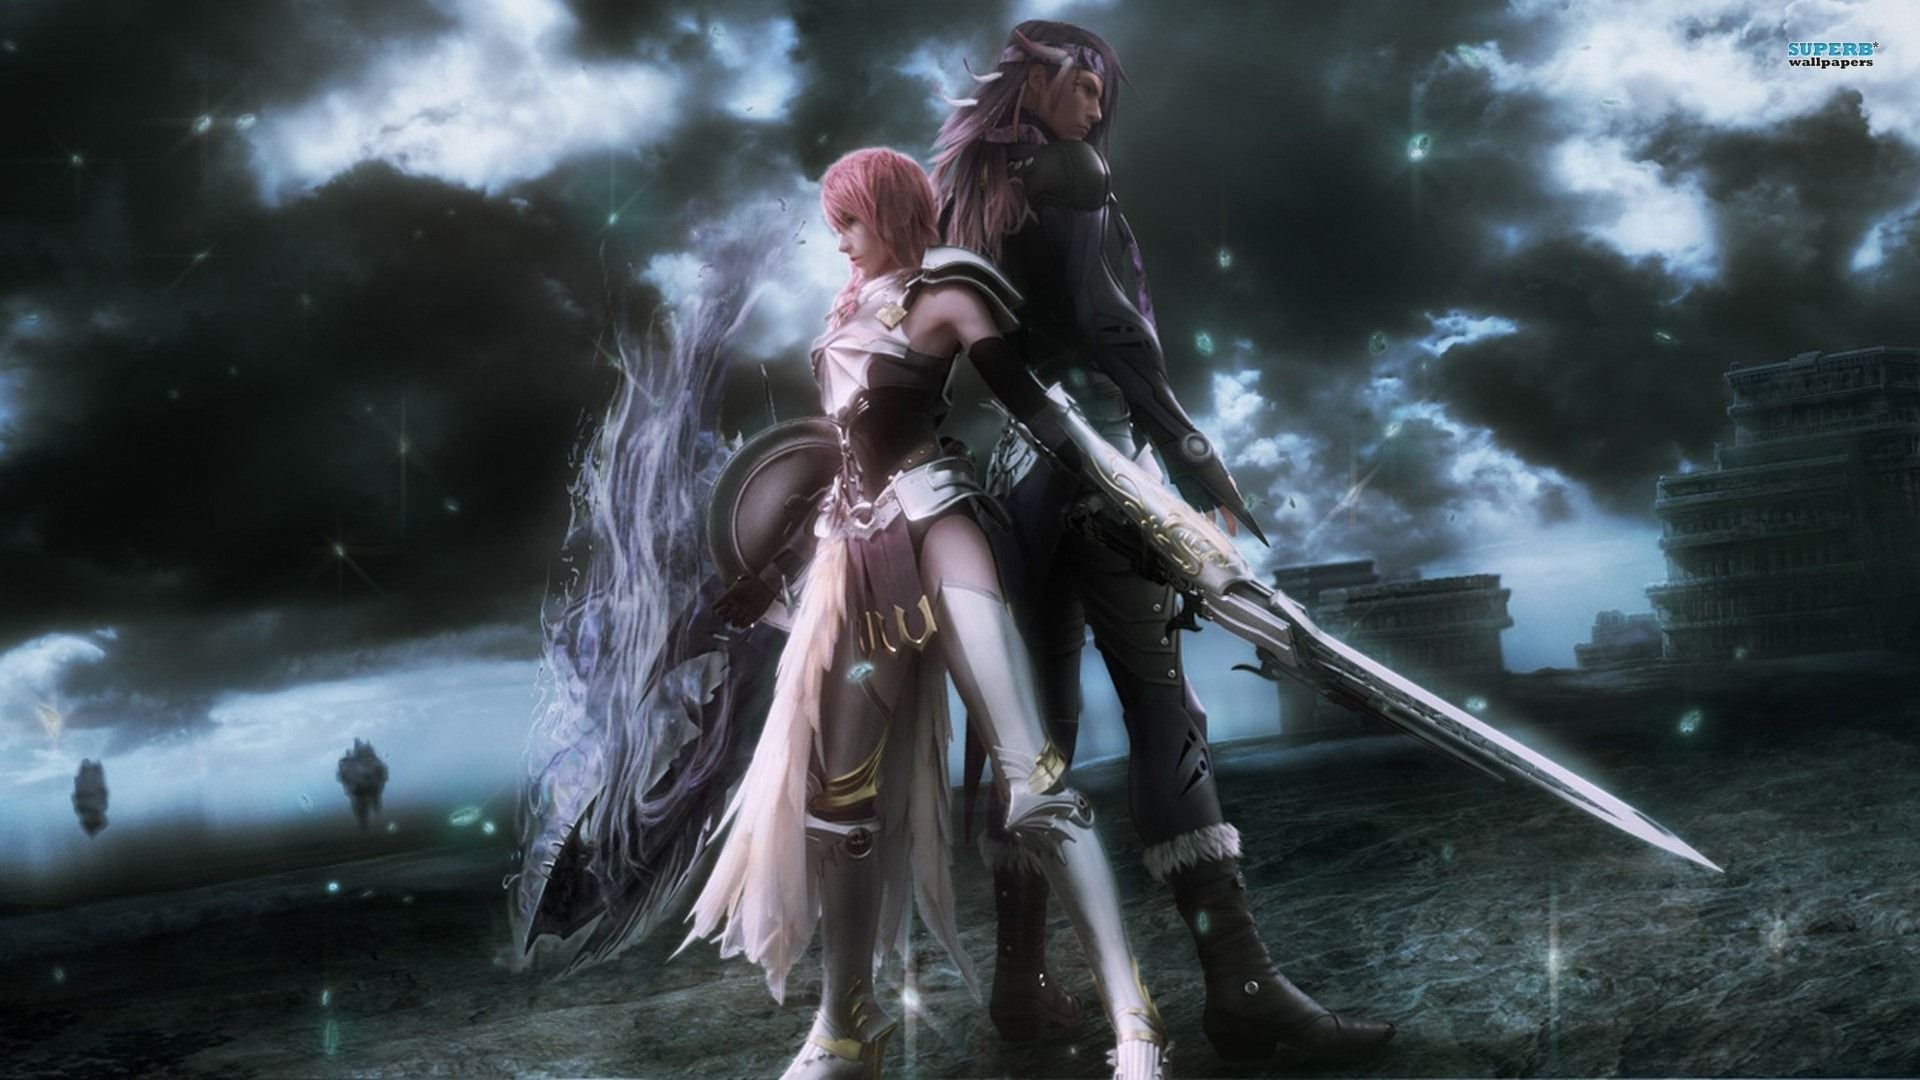 1920x1080 Lightning And Caius - Final Fantasy XIII-2 390997